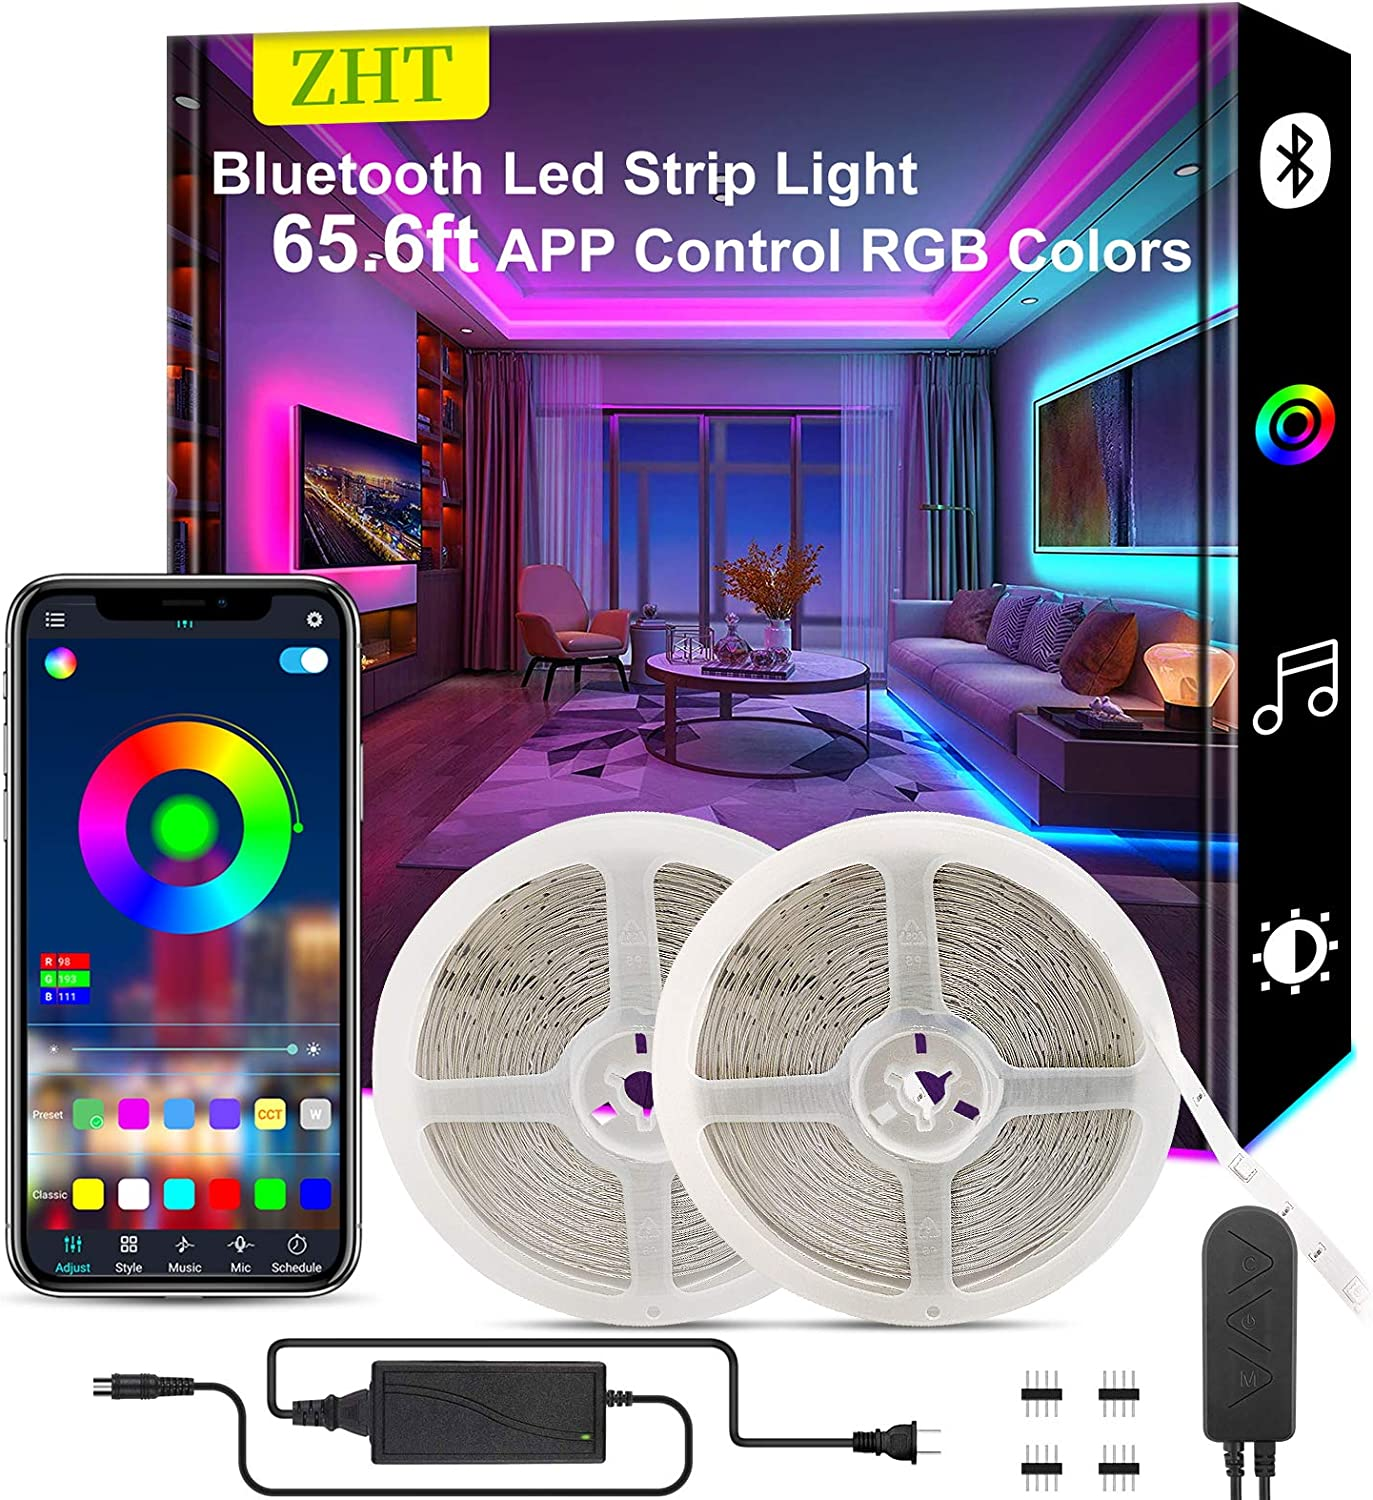 65.6ft Led Strip Lights Bluetooth, ZHT Bluetooth Ultra Long Light Teen Girls Room Decor for Bedroom Living Rooms Dining Rooms Kitchens Desks Cabinets Halloween Christmas.